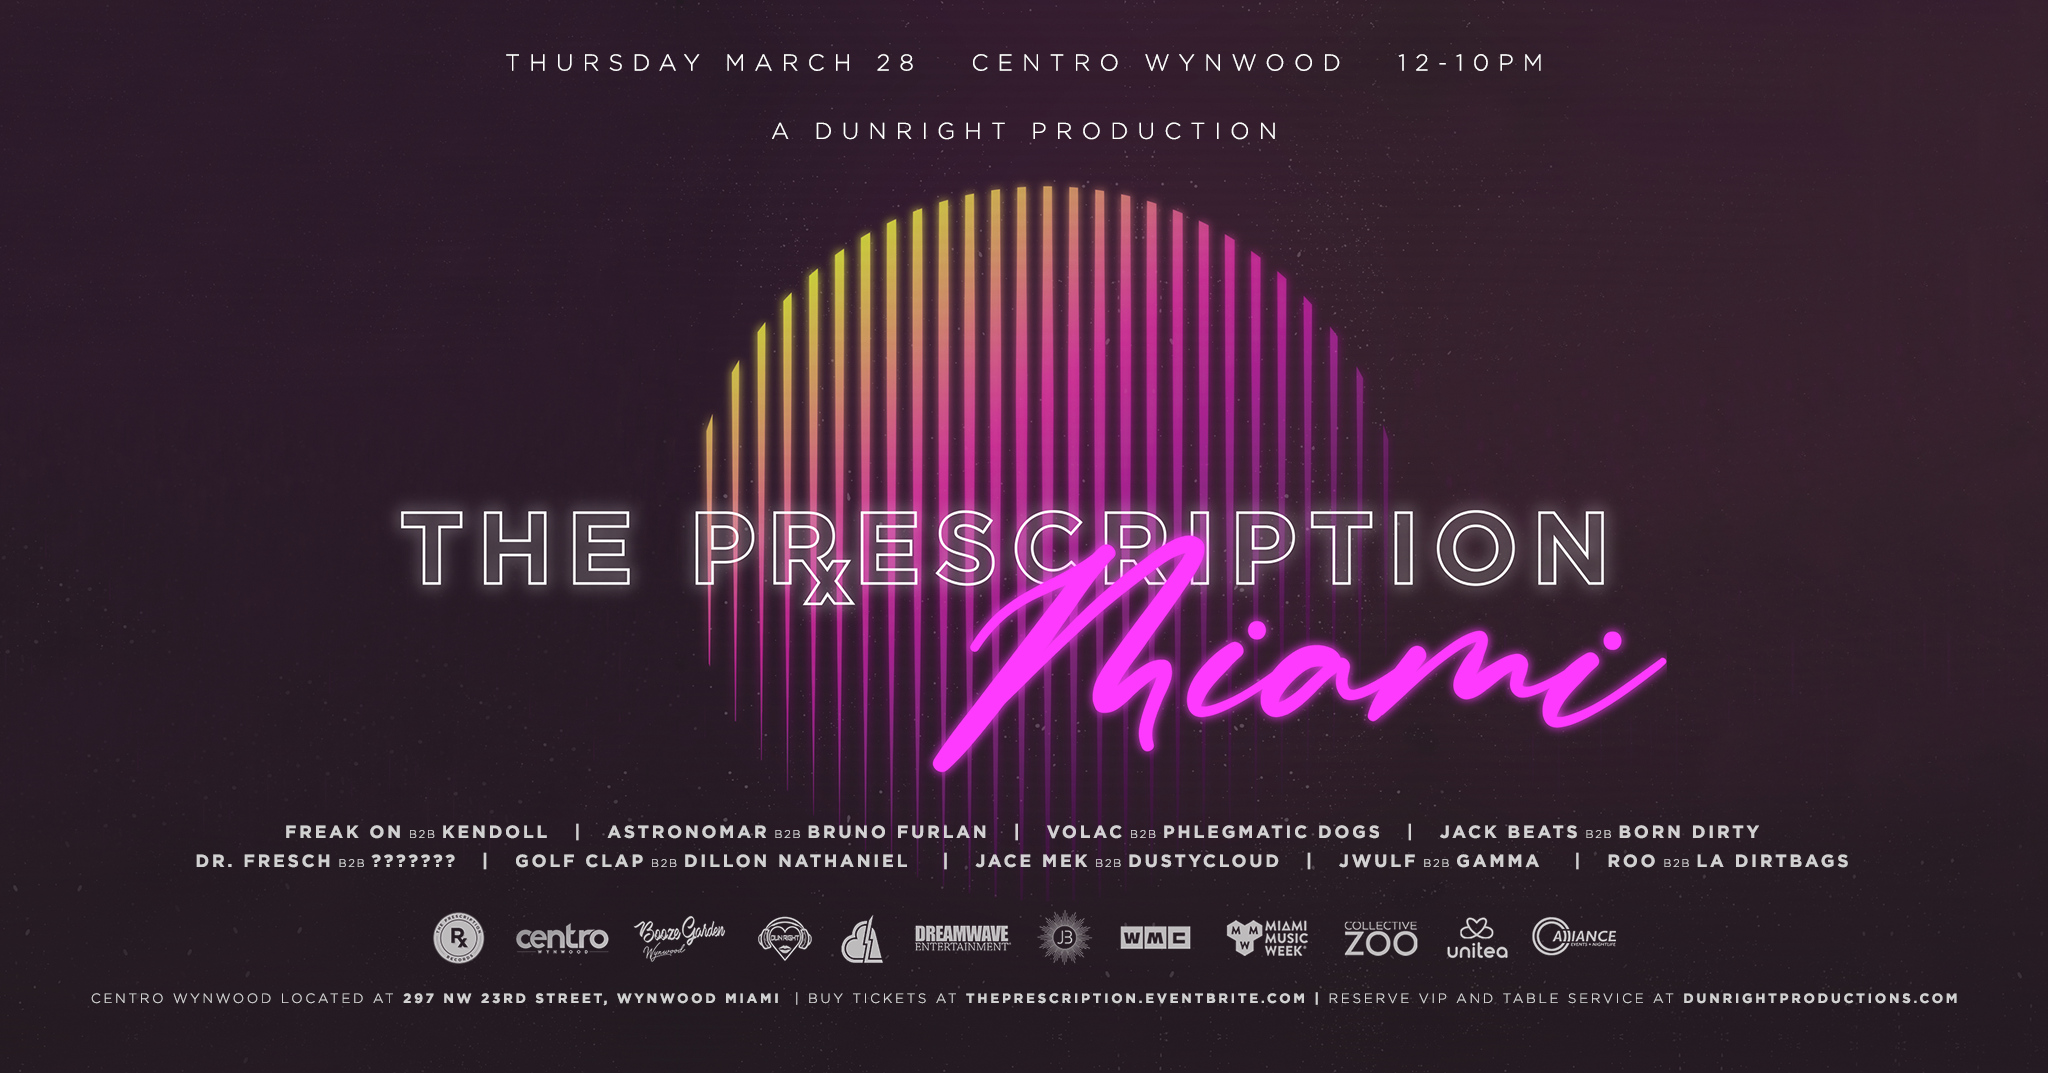 The Prescription Records Official Label Showcase Image